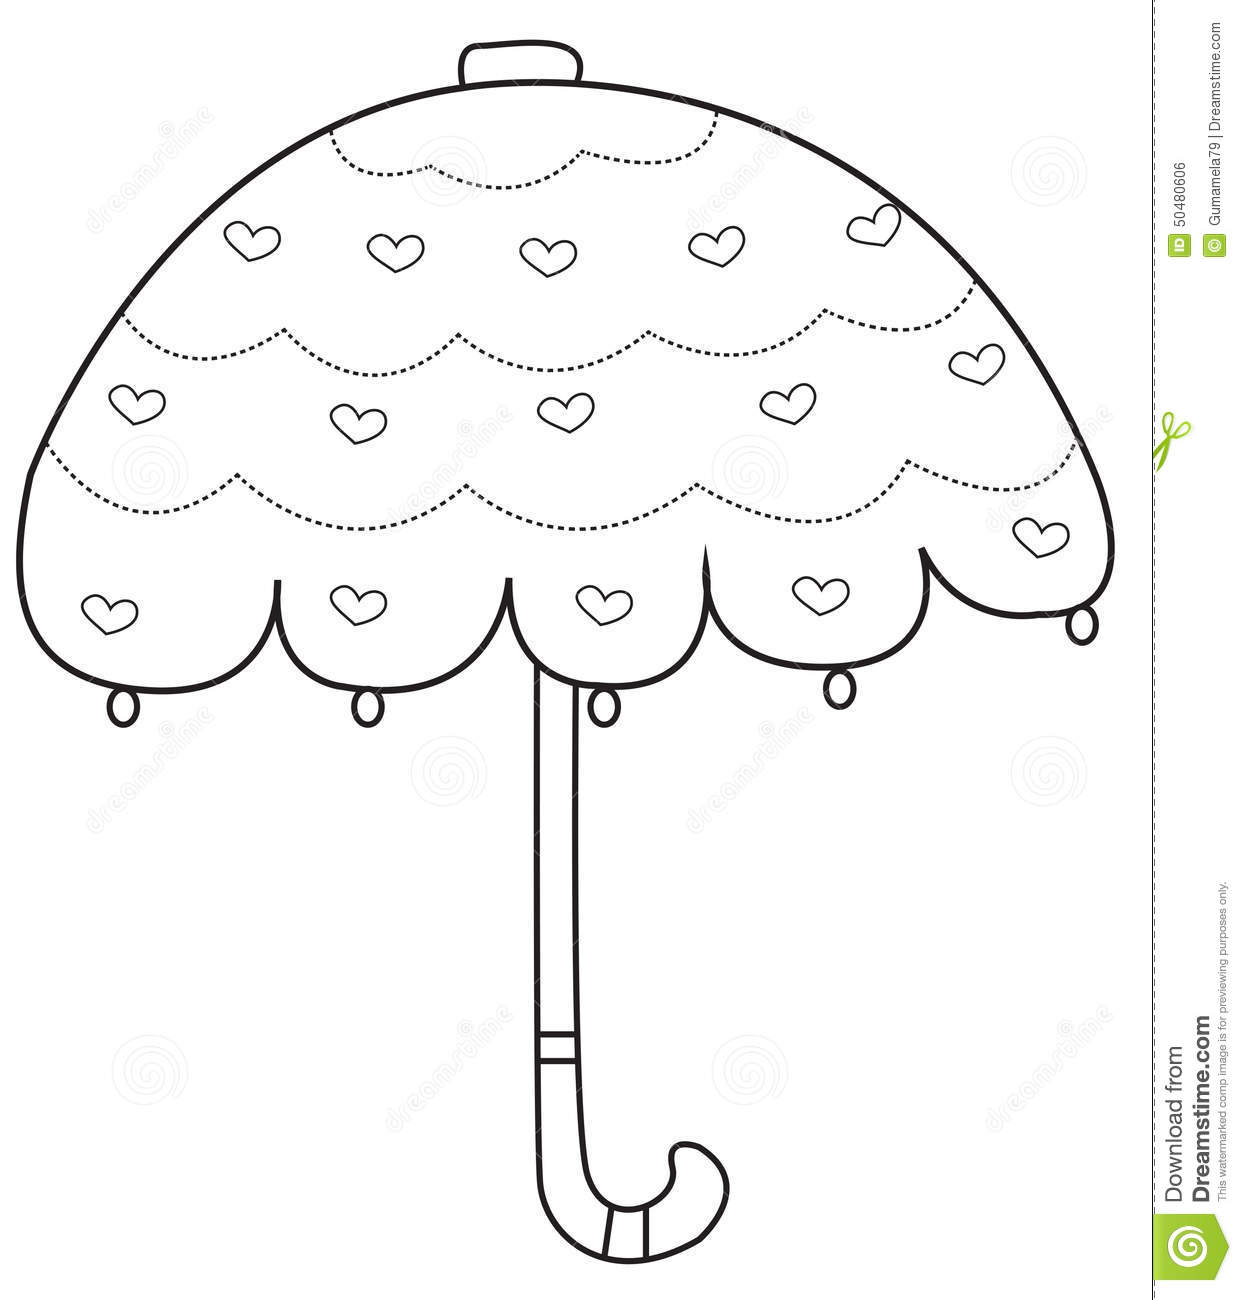 coloring kids page umbrella download